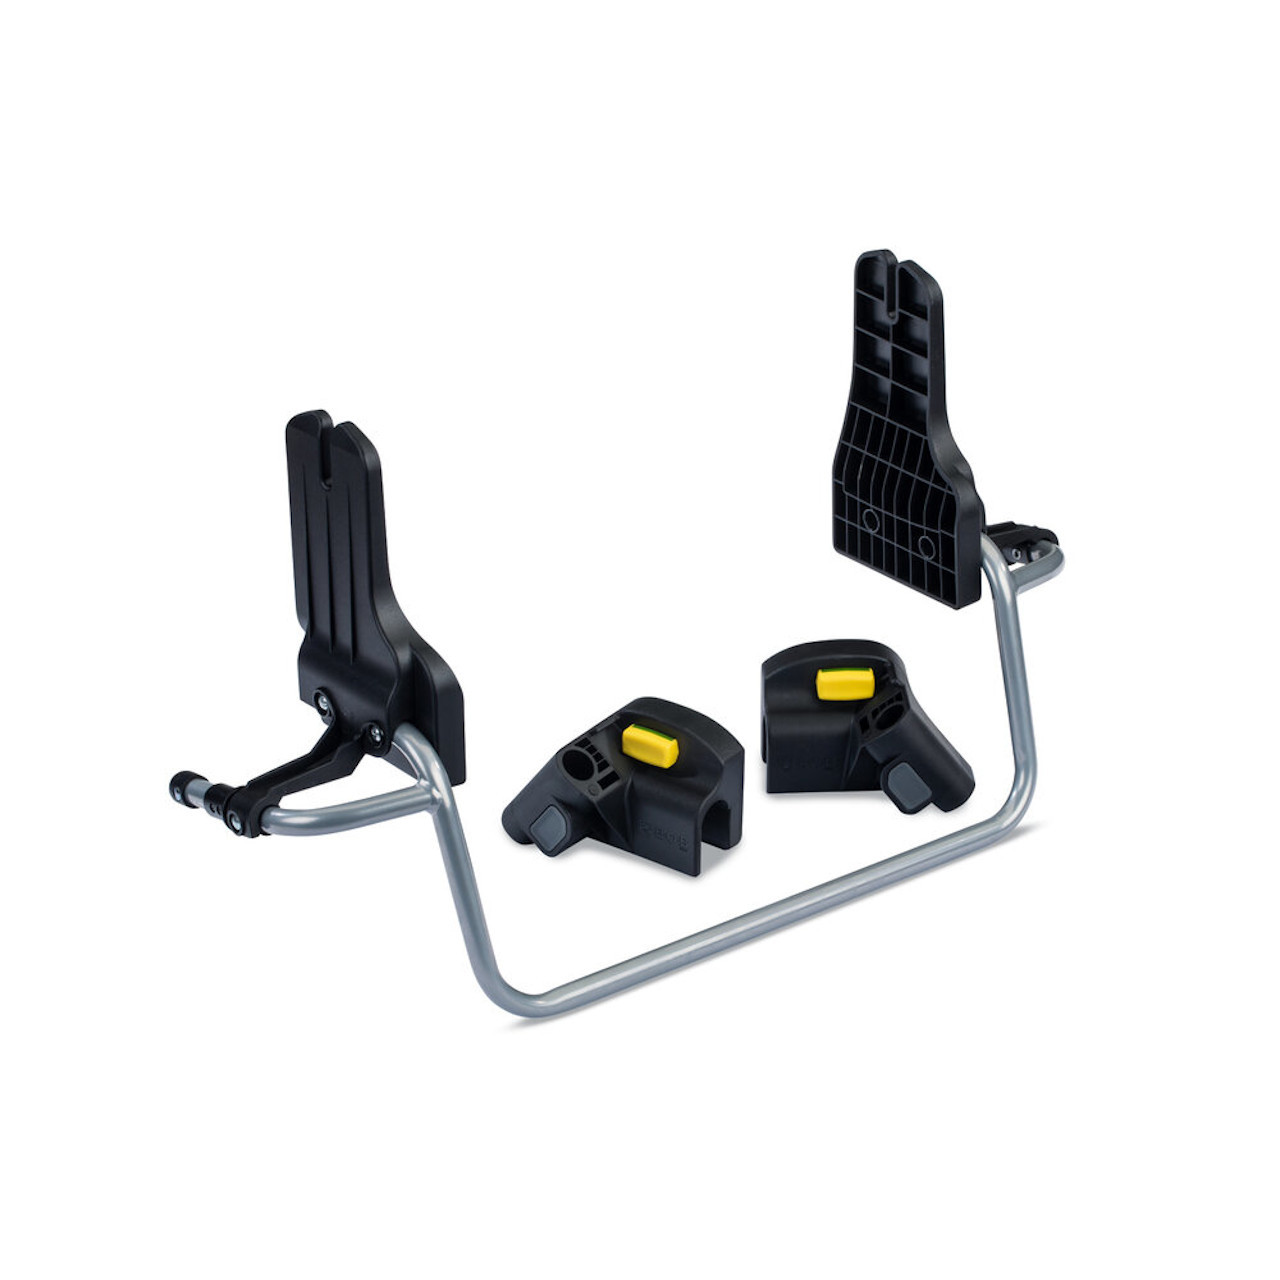 New 2020 Graco Single  Infant Car Seat Adapter - Perspective View